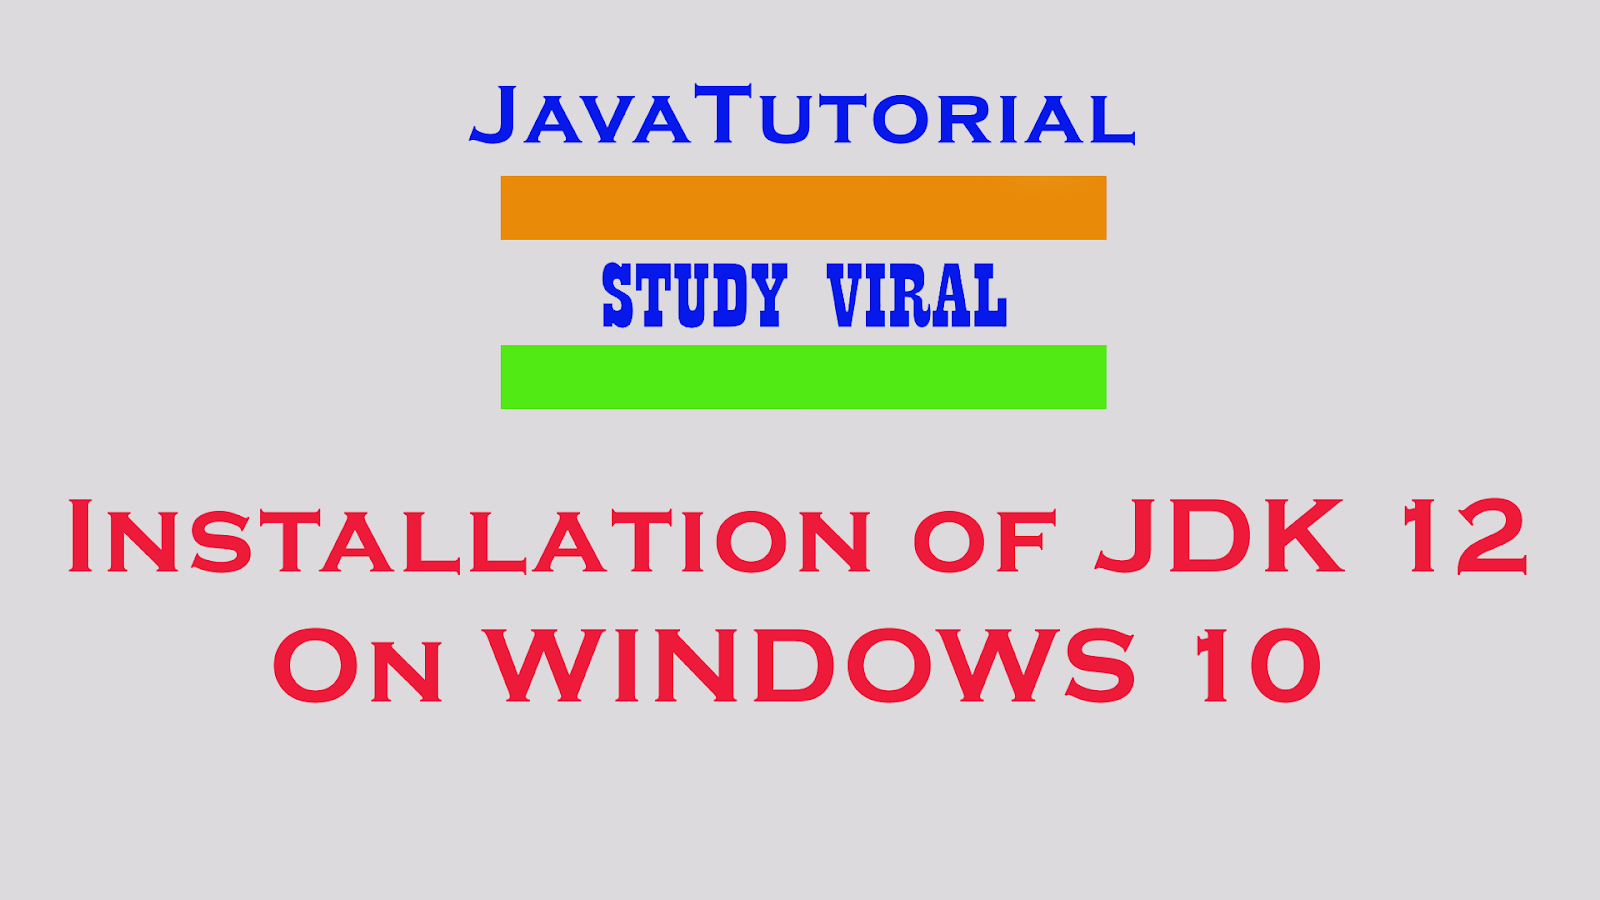 where does java jdk install on windows 10